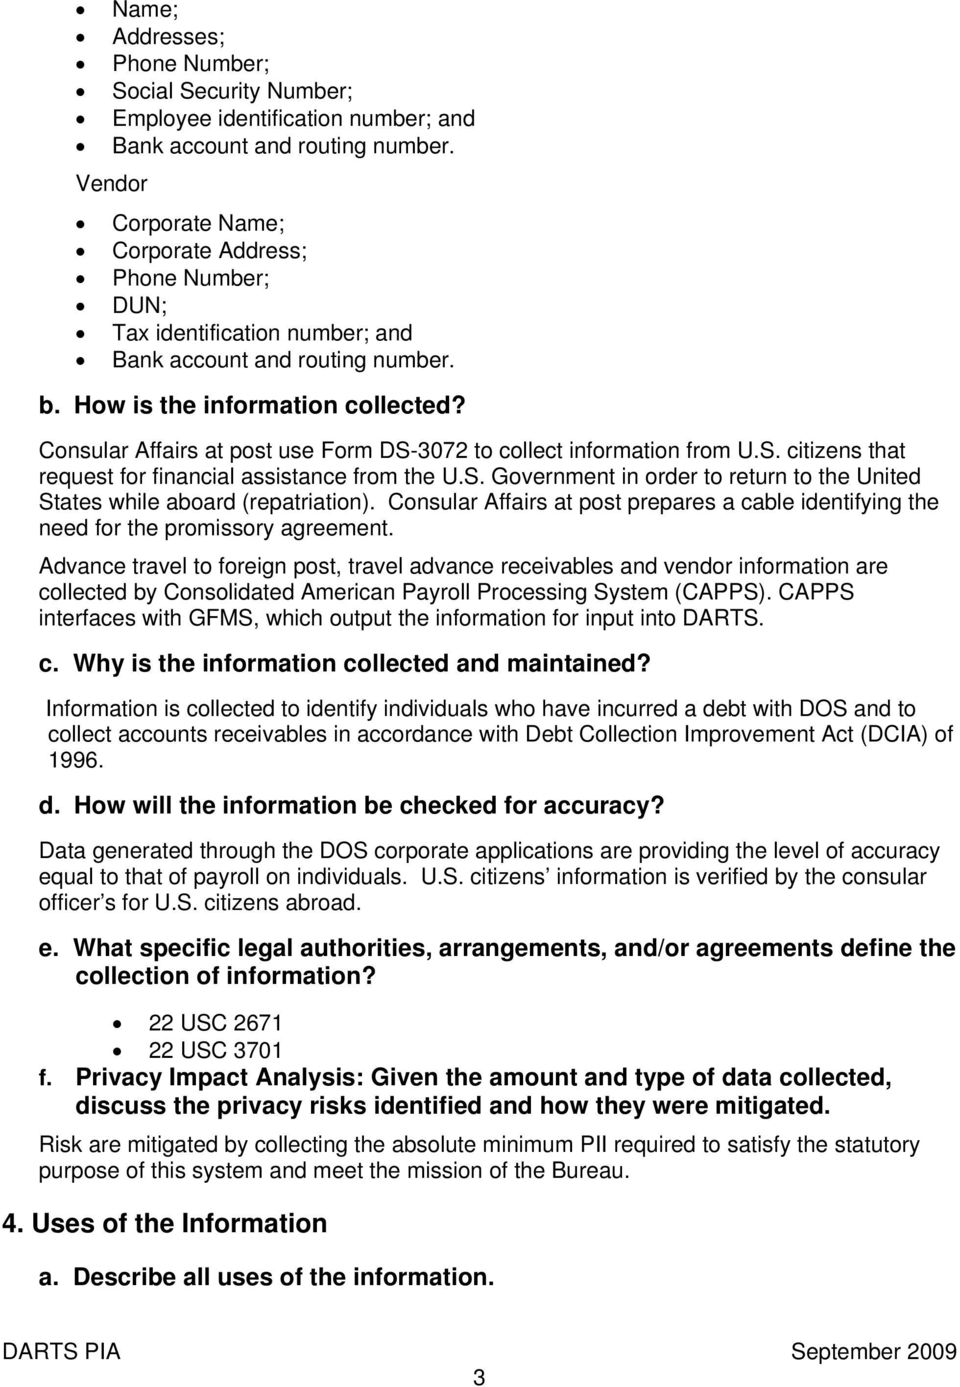 Consular Affairs at post use Form DS-3072 to collect information from U.S. citizens that request for financial assistance from the U.S. Government in order to return to the United States while aboard (repatriation).